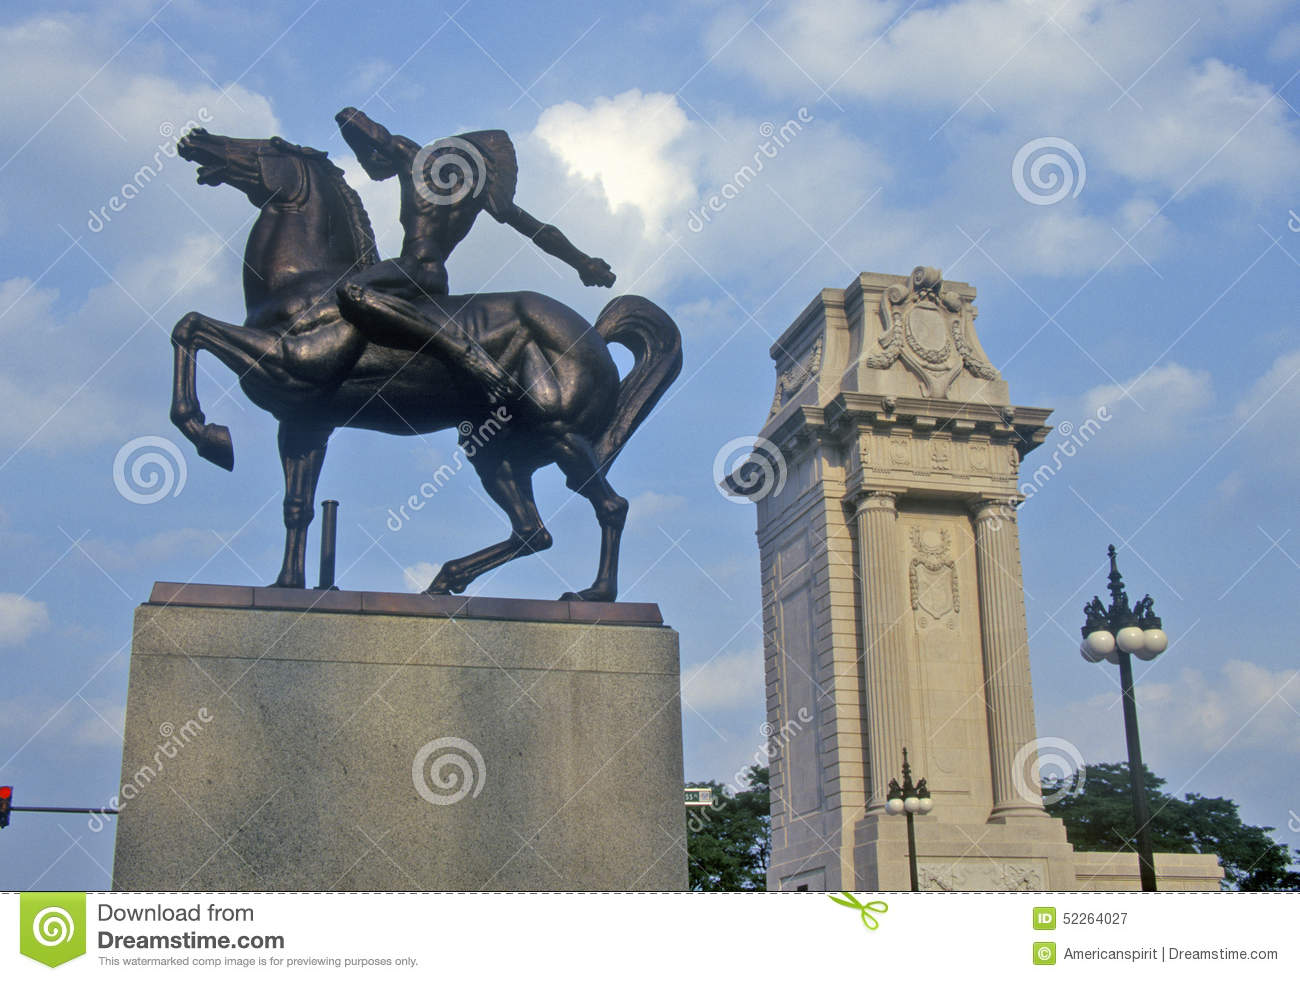 Statue Of Indian On Horse Grant Park Chicago Illinois